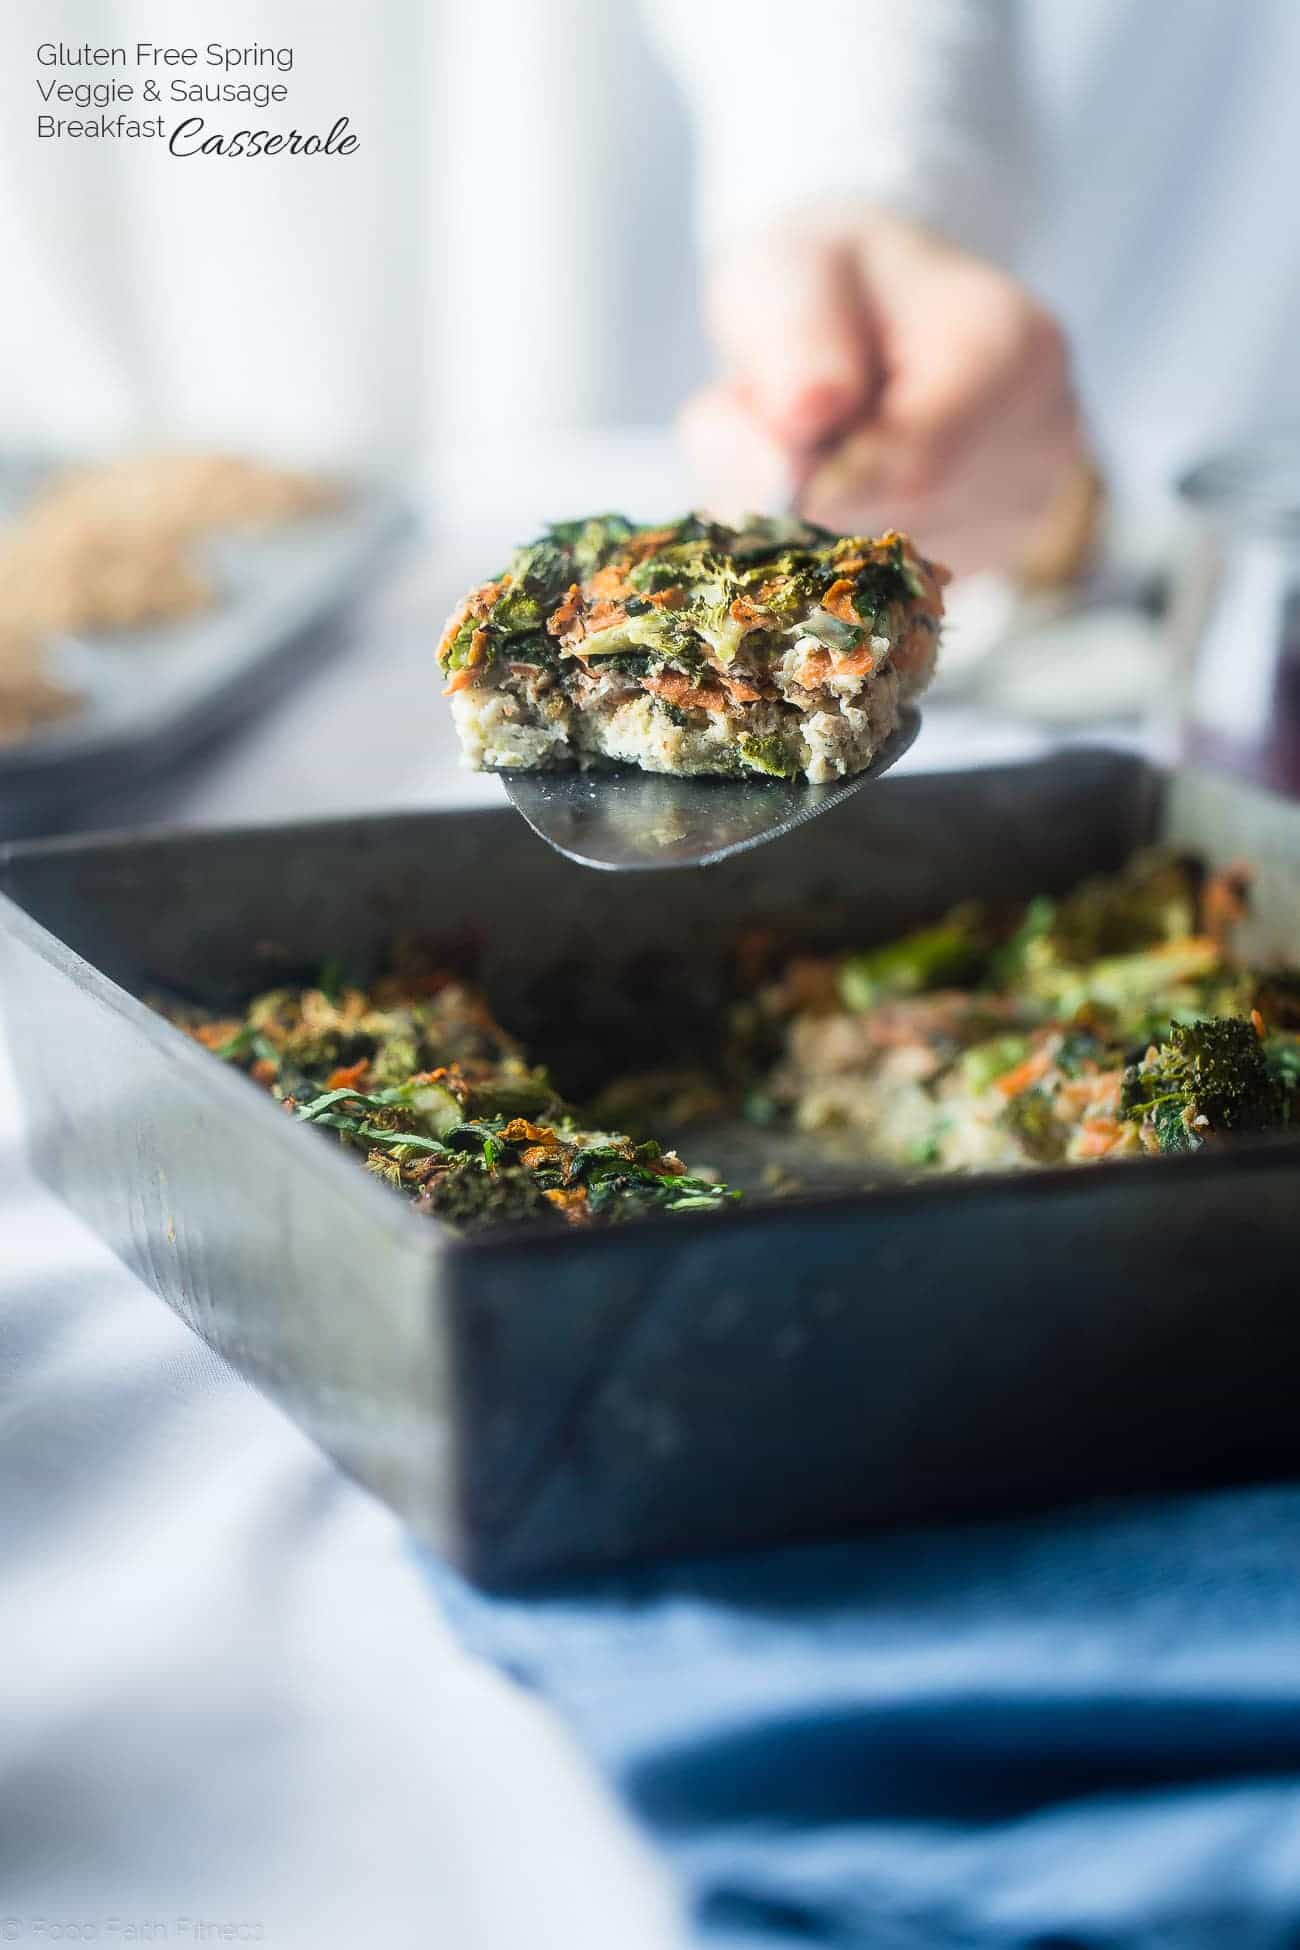 Gluten Free Spring Veggie Sausage Breakfast Casserole - This easy, overnight gluten free breakfast casserole is loaded with seasonal veggies and is only 175 calories! Perfect for spring brunches! | Foodfaithfitness.com | @FoodFaithFit